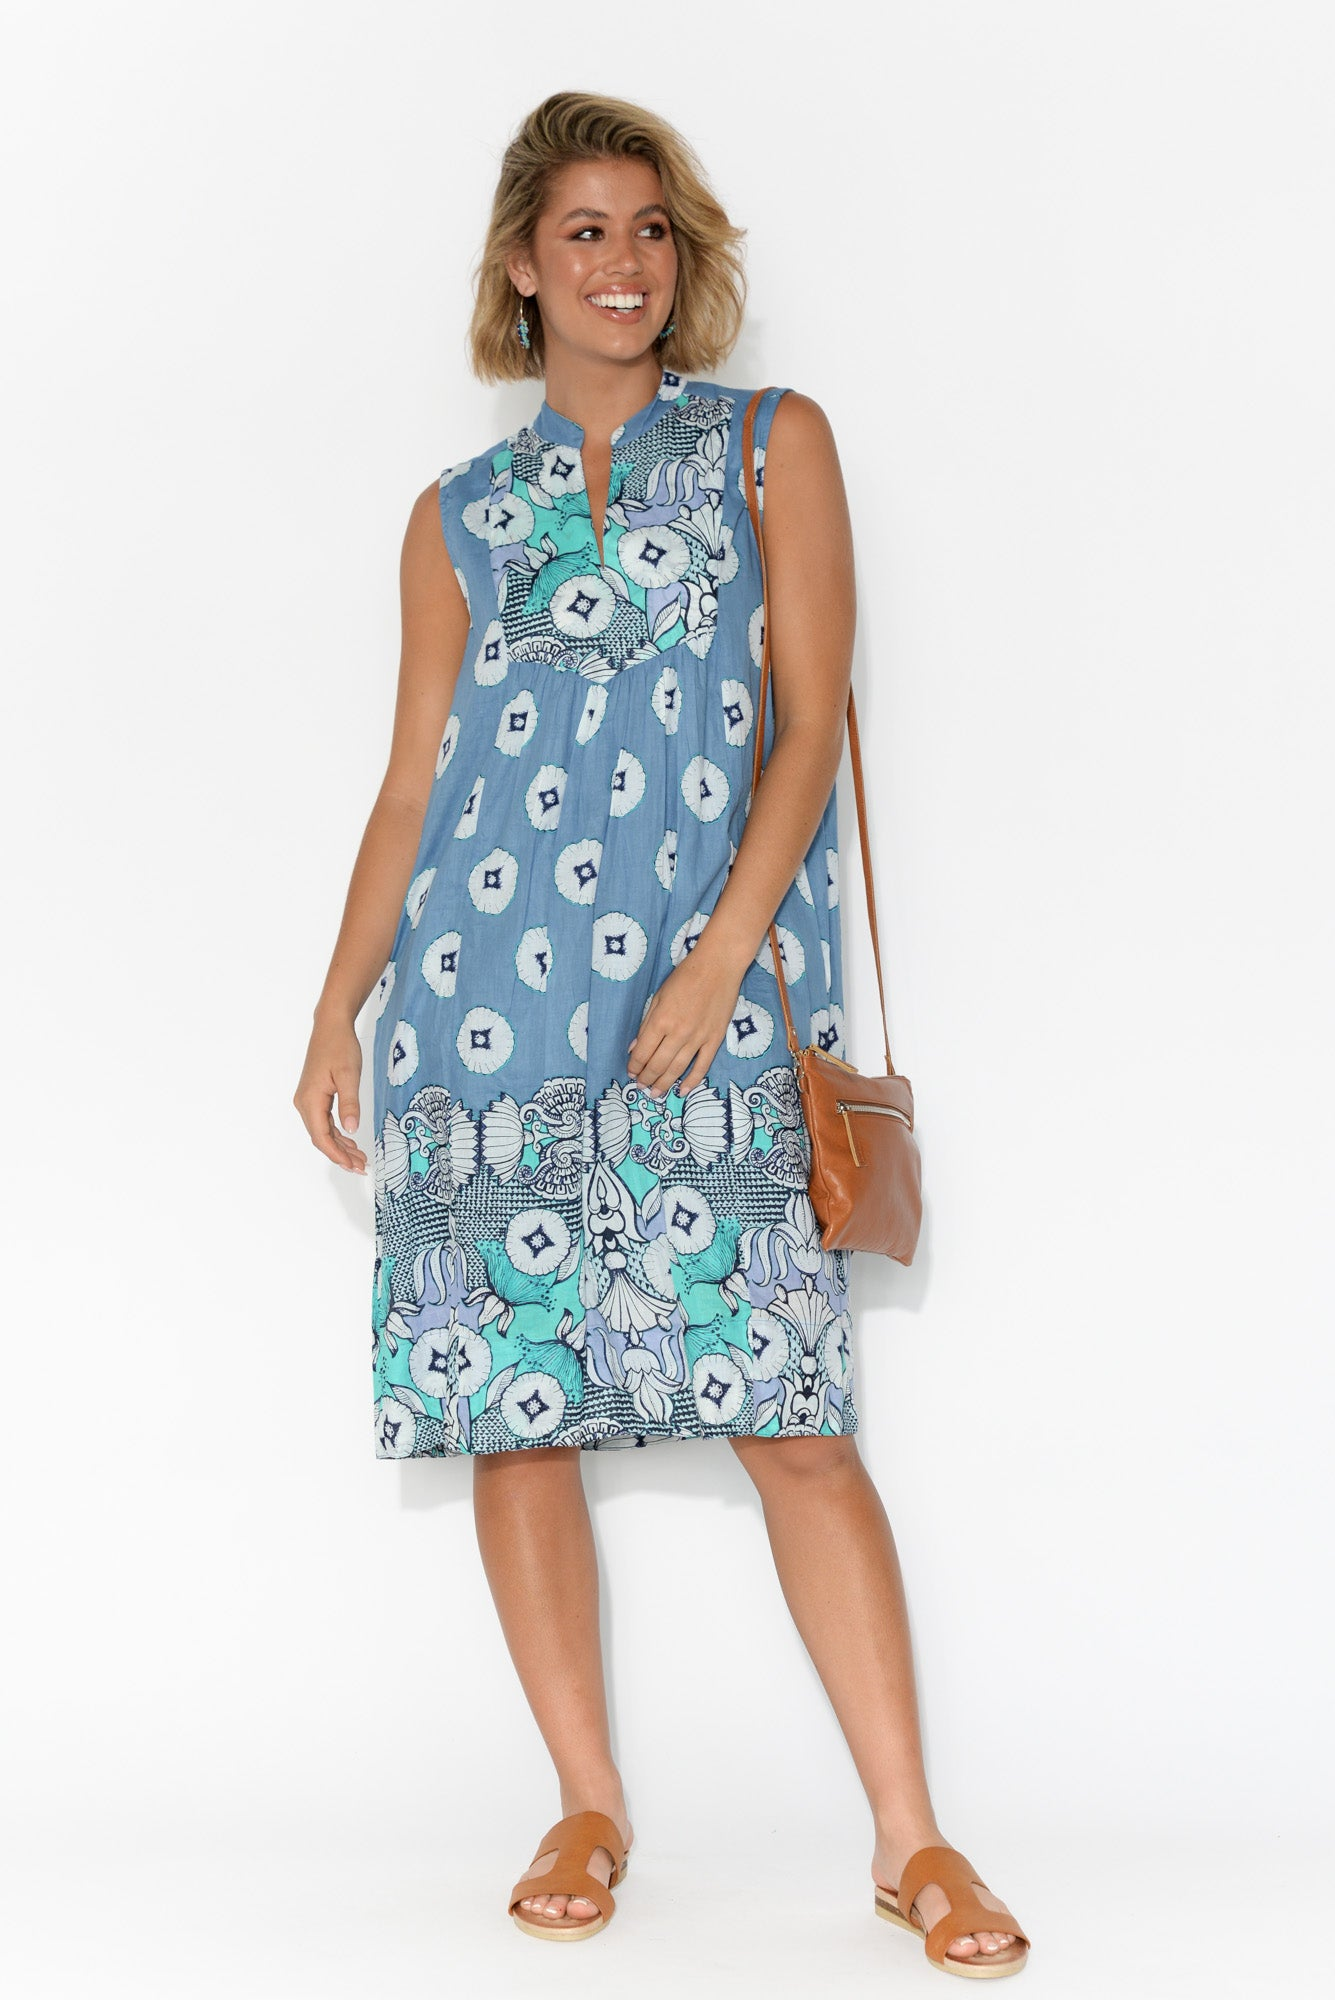 Kuranda Blue Lotus Cotton Dress